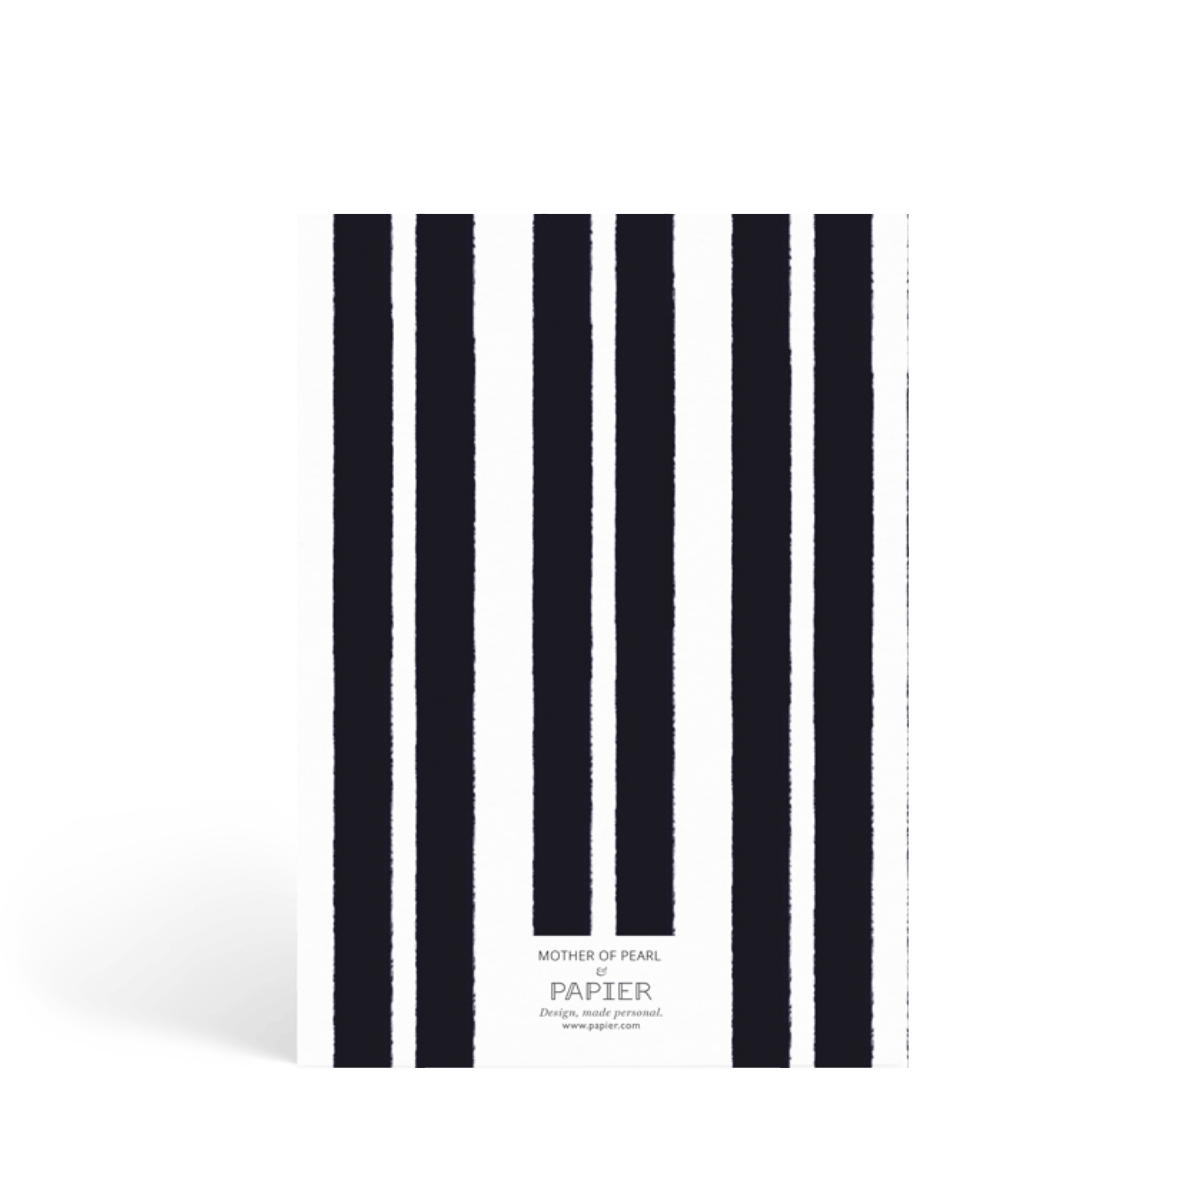 Https%3a%2f%2fwww.papier.com%2fproduct image%2f54998%2f5%2fnavy paint stripe 13216 back 1542299061.png?ixlib=rb 1.1